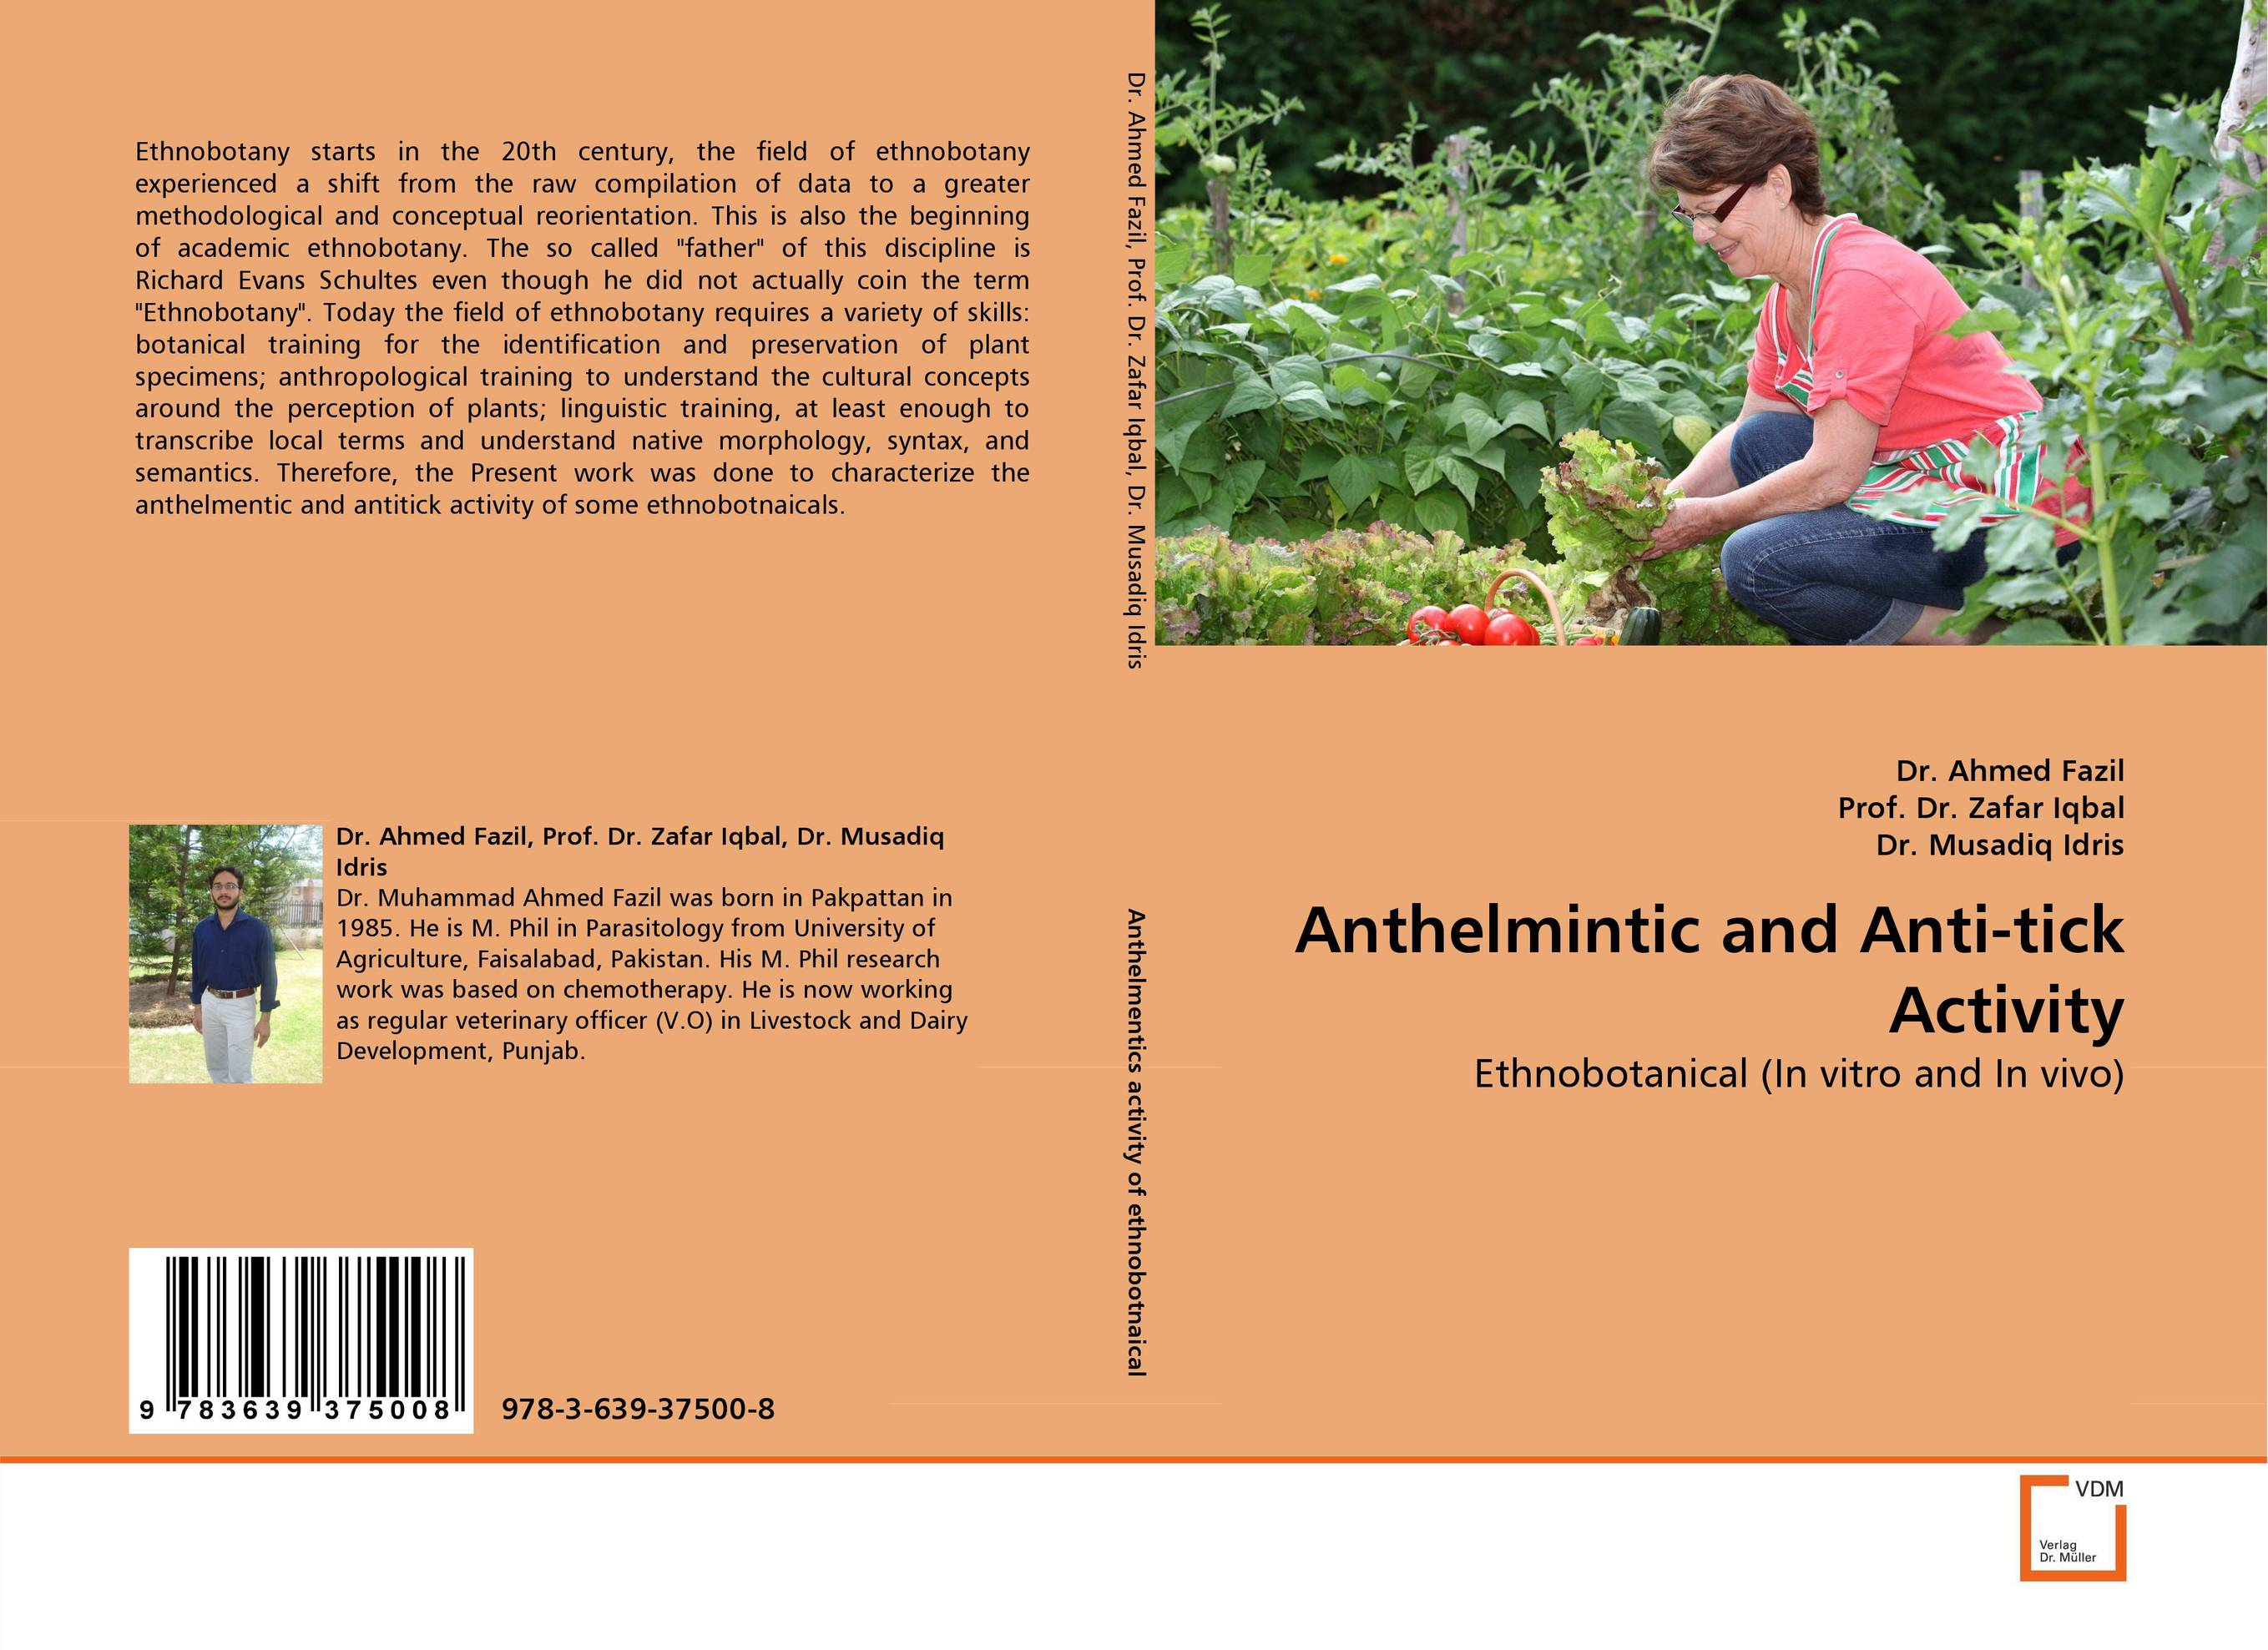 Anthelmintic and Anti-tick Activity training of field functionaries